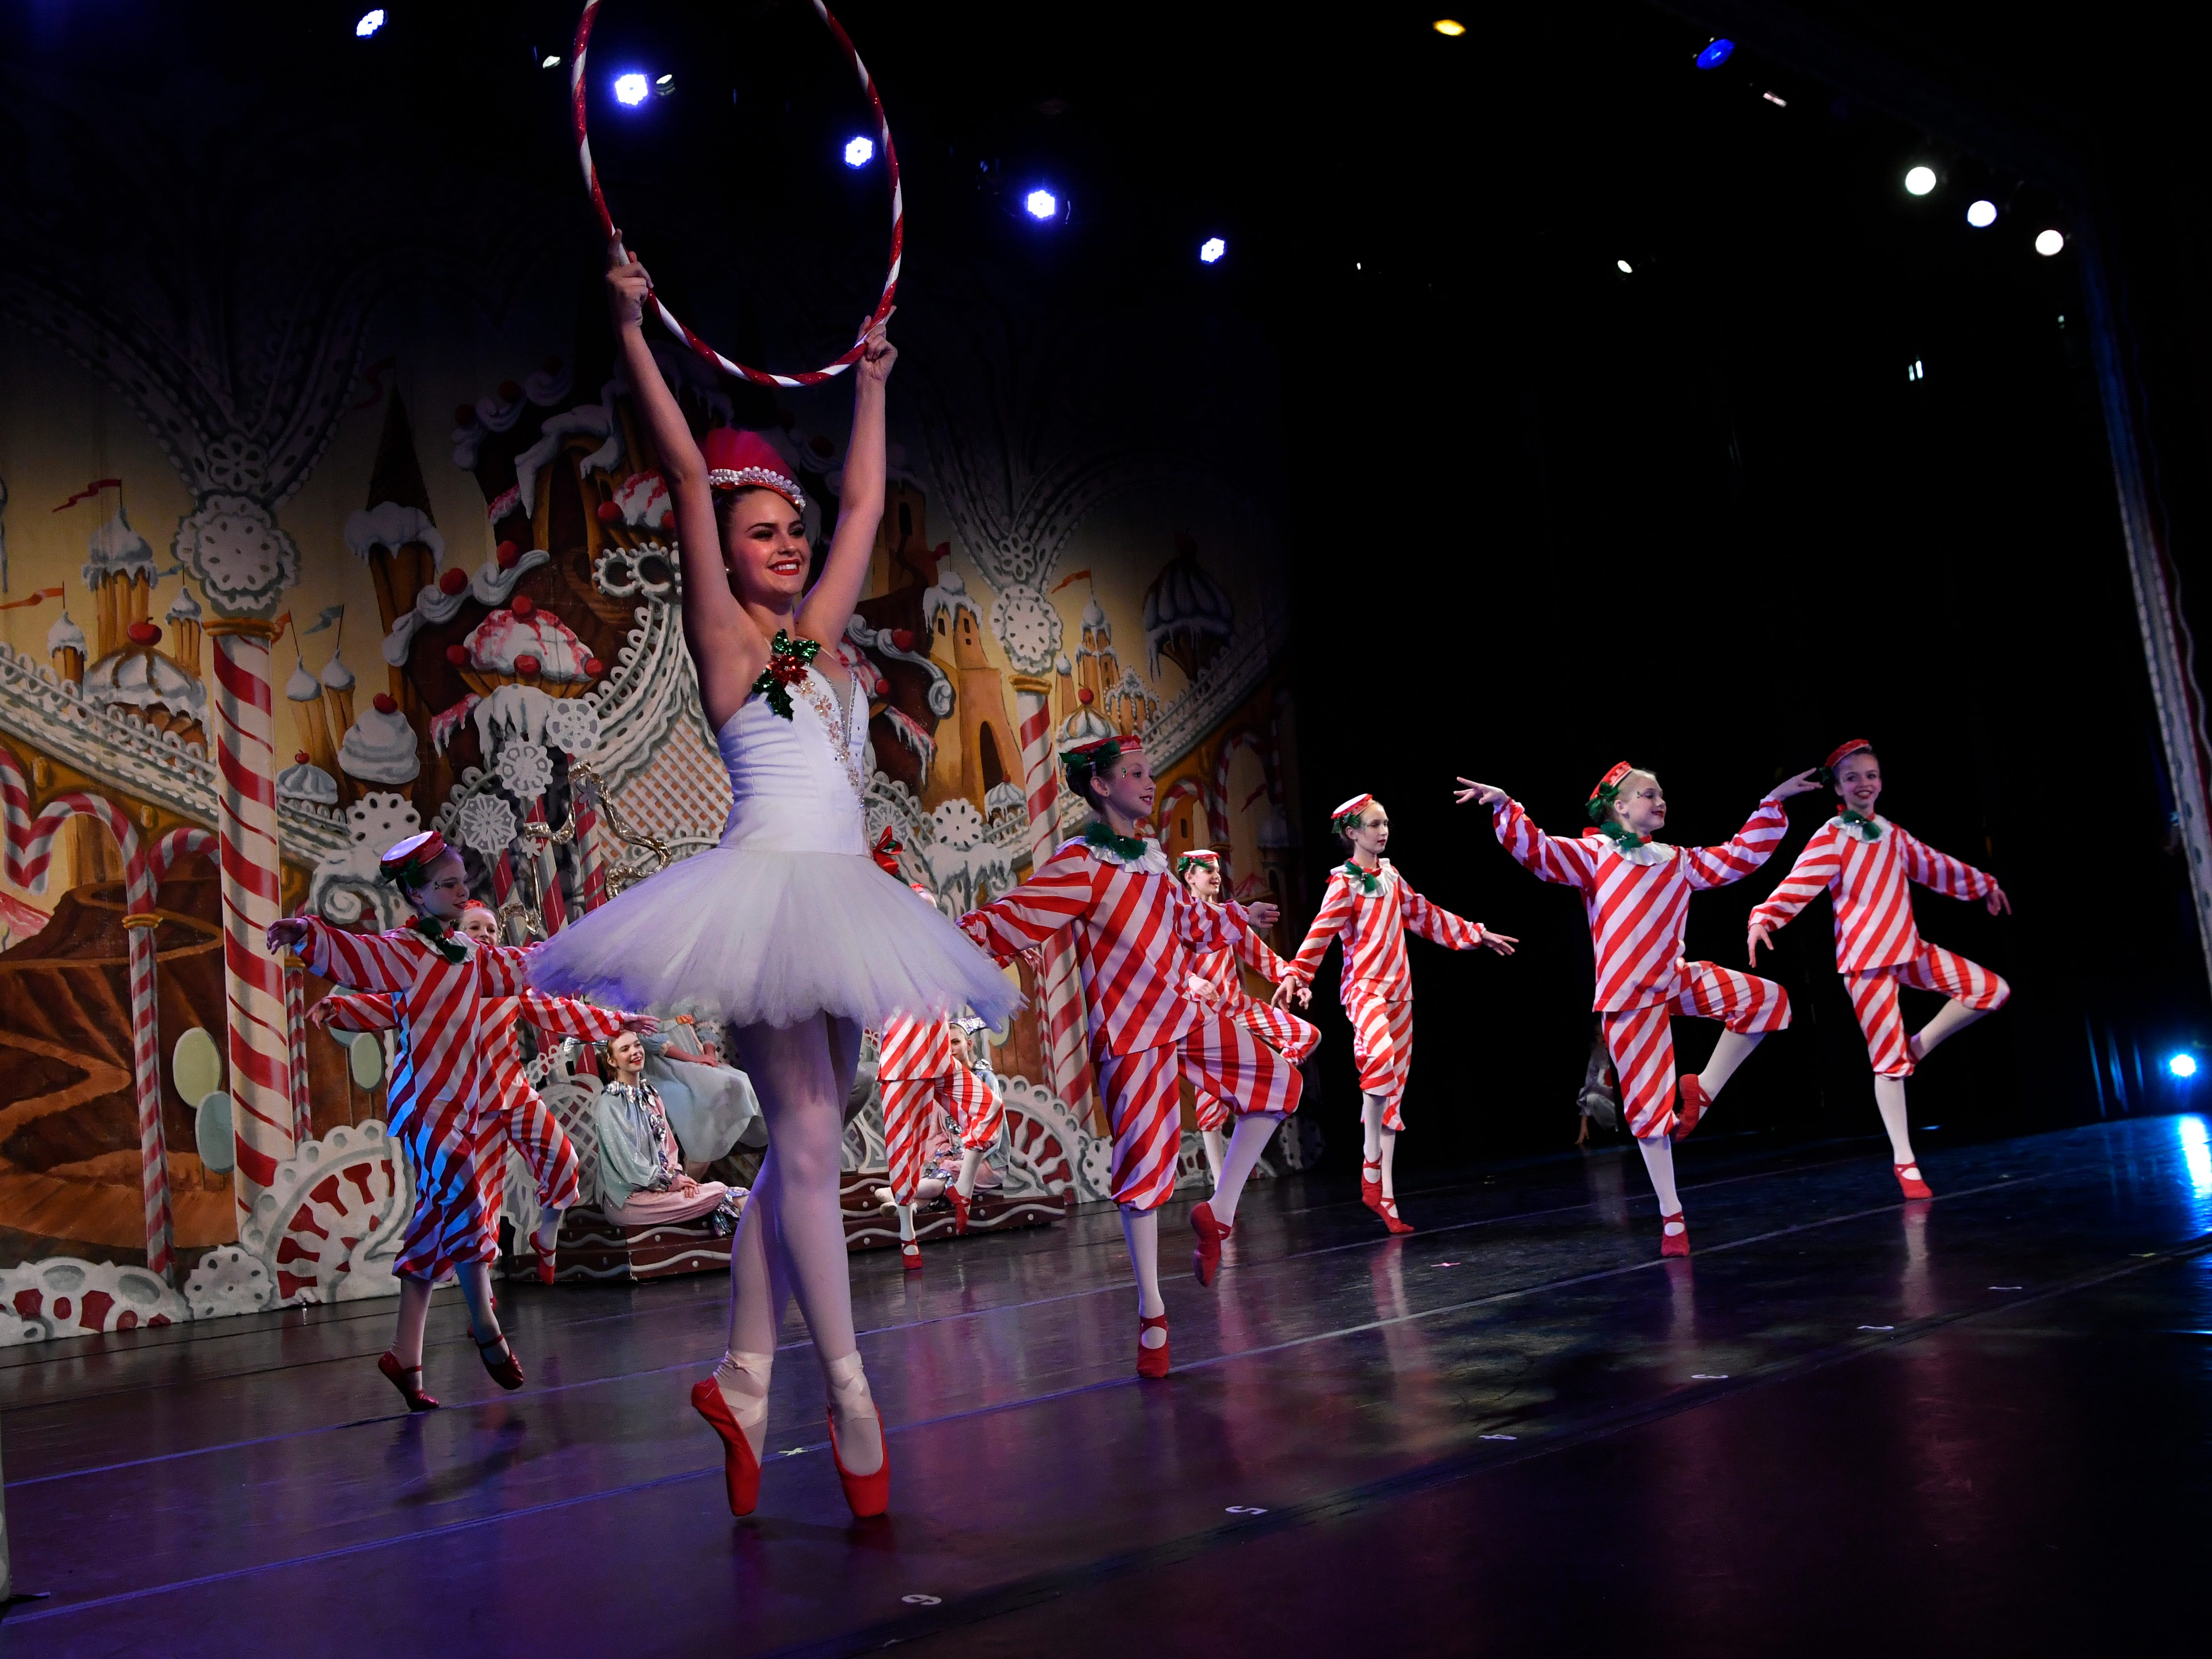 Katelyn Beard dances as the Peppermint Twist during the Land of the Sweets scene at a performance for schoolchildren of The Nutcracker Friday Nov. 14, 2018. This was the 31st year for the Abilene Ballet Theatre production, held at the Paramount Theatre.